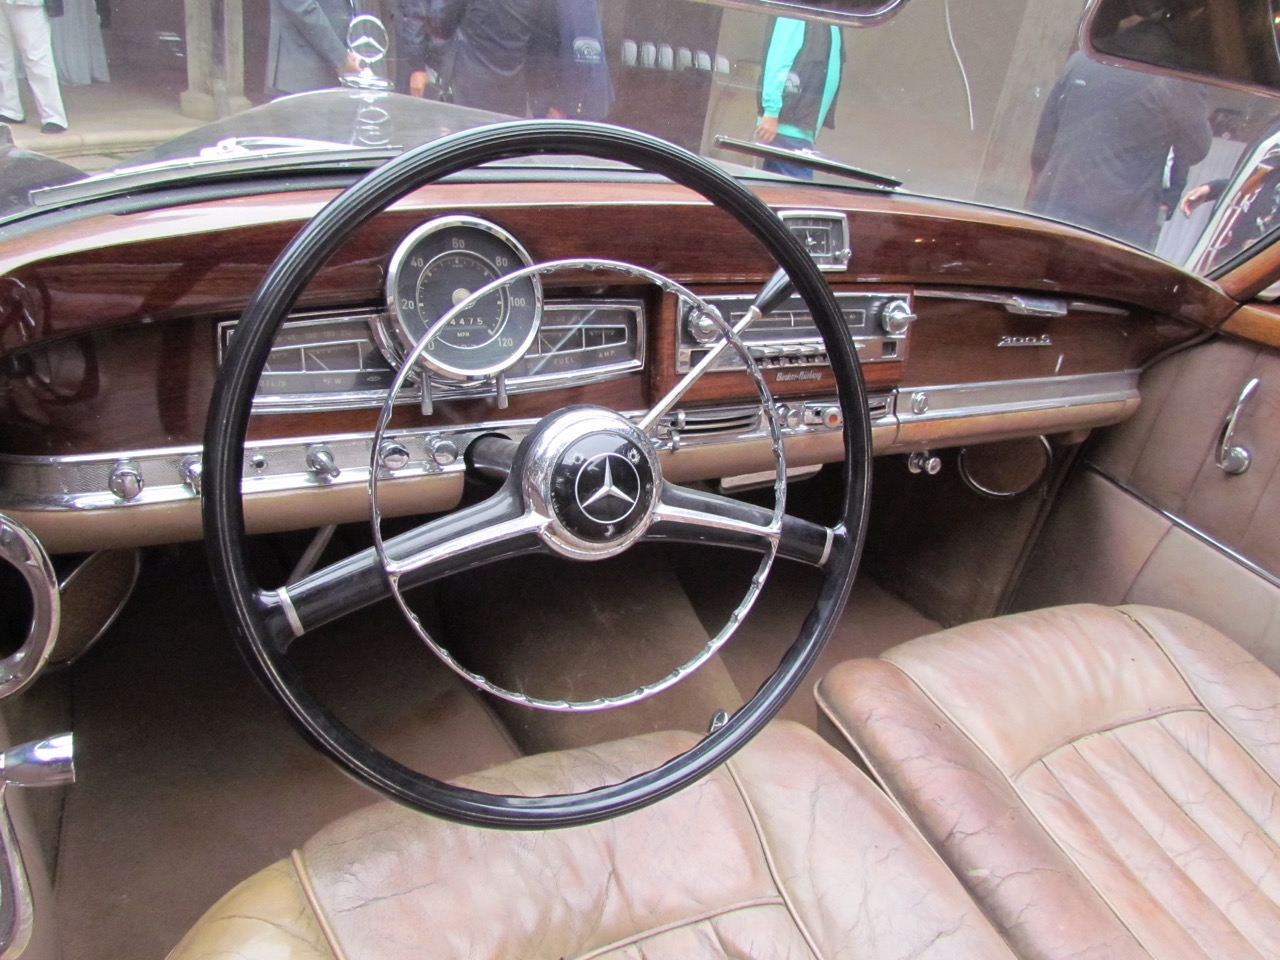 Interior shows patina of the car's age